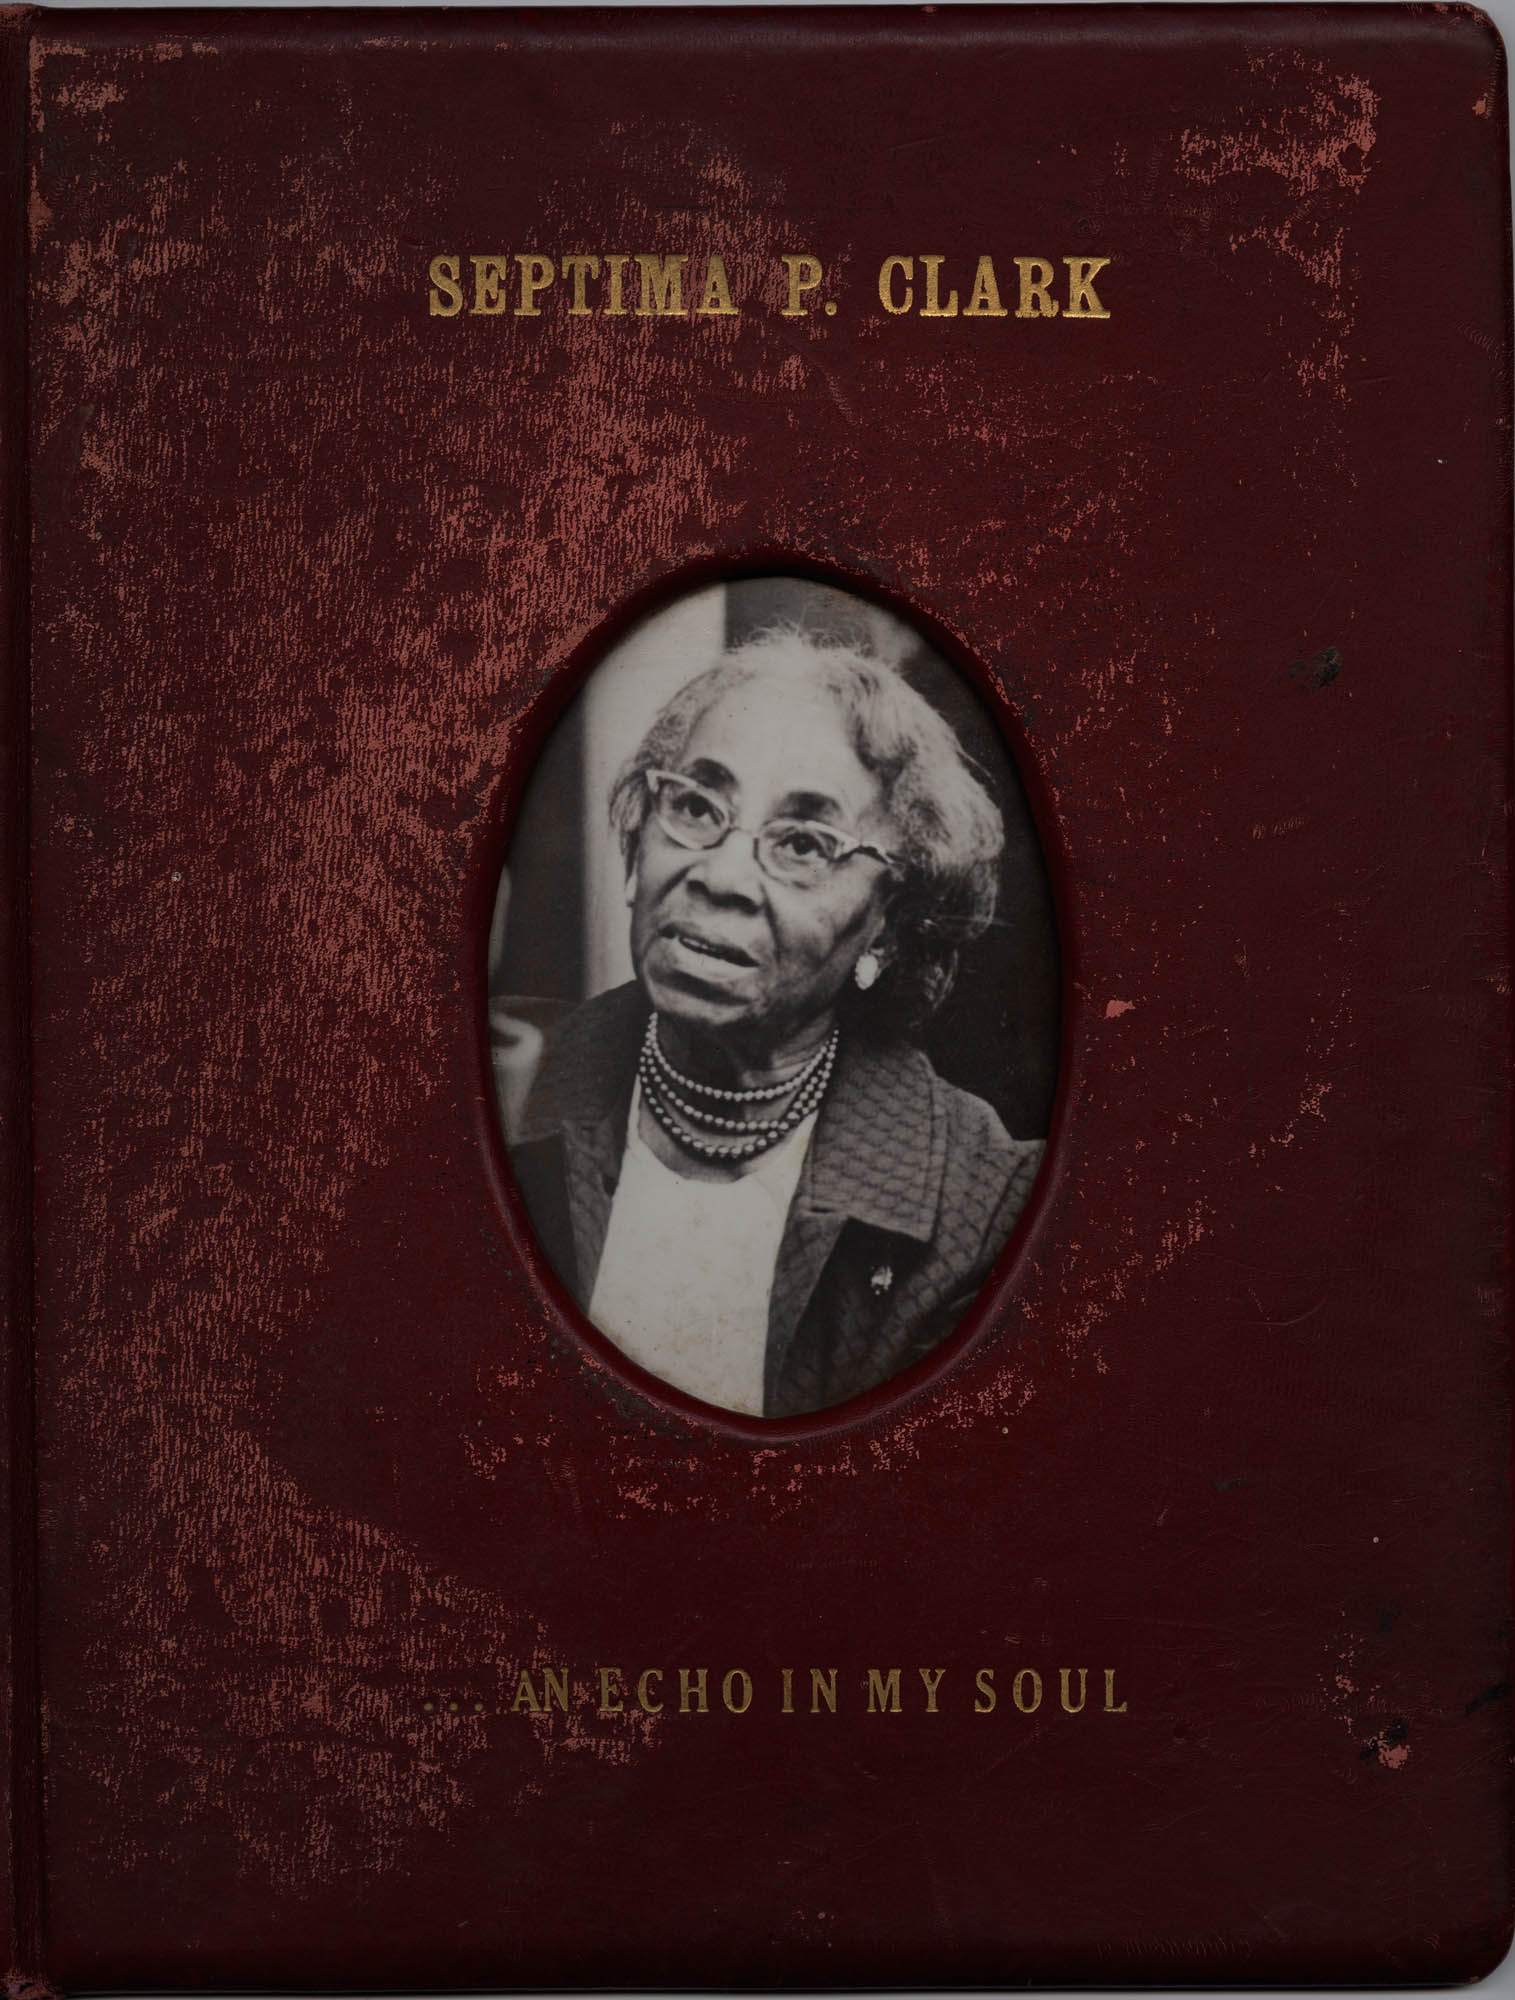 Septima P. Clark Scrapbook, Cover